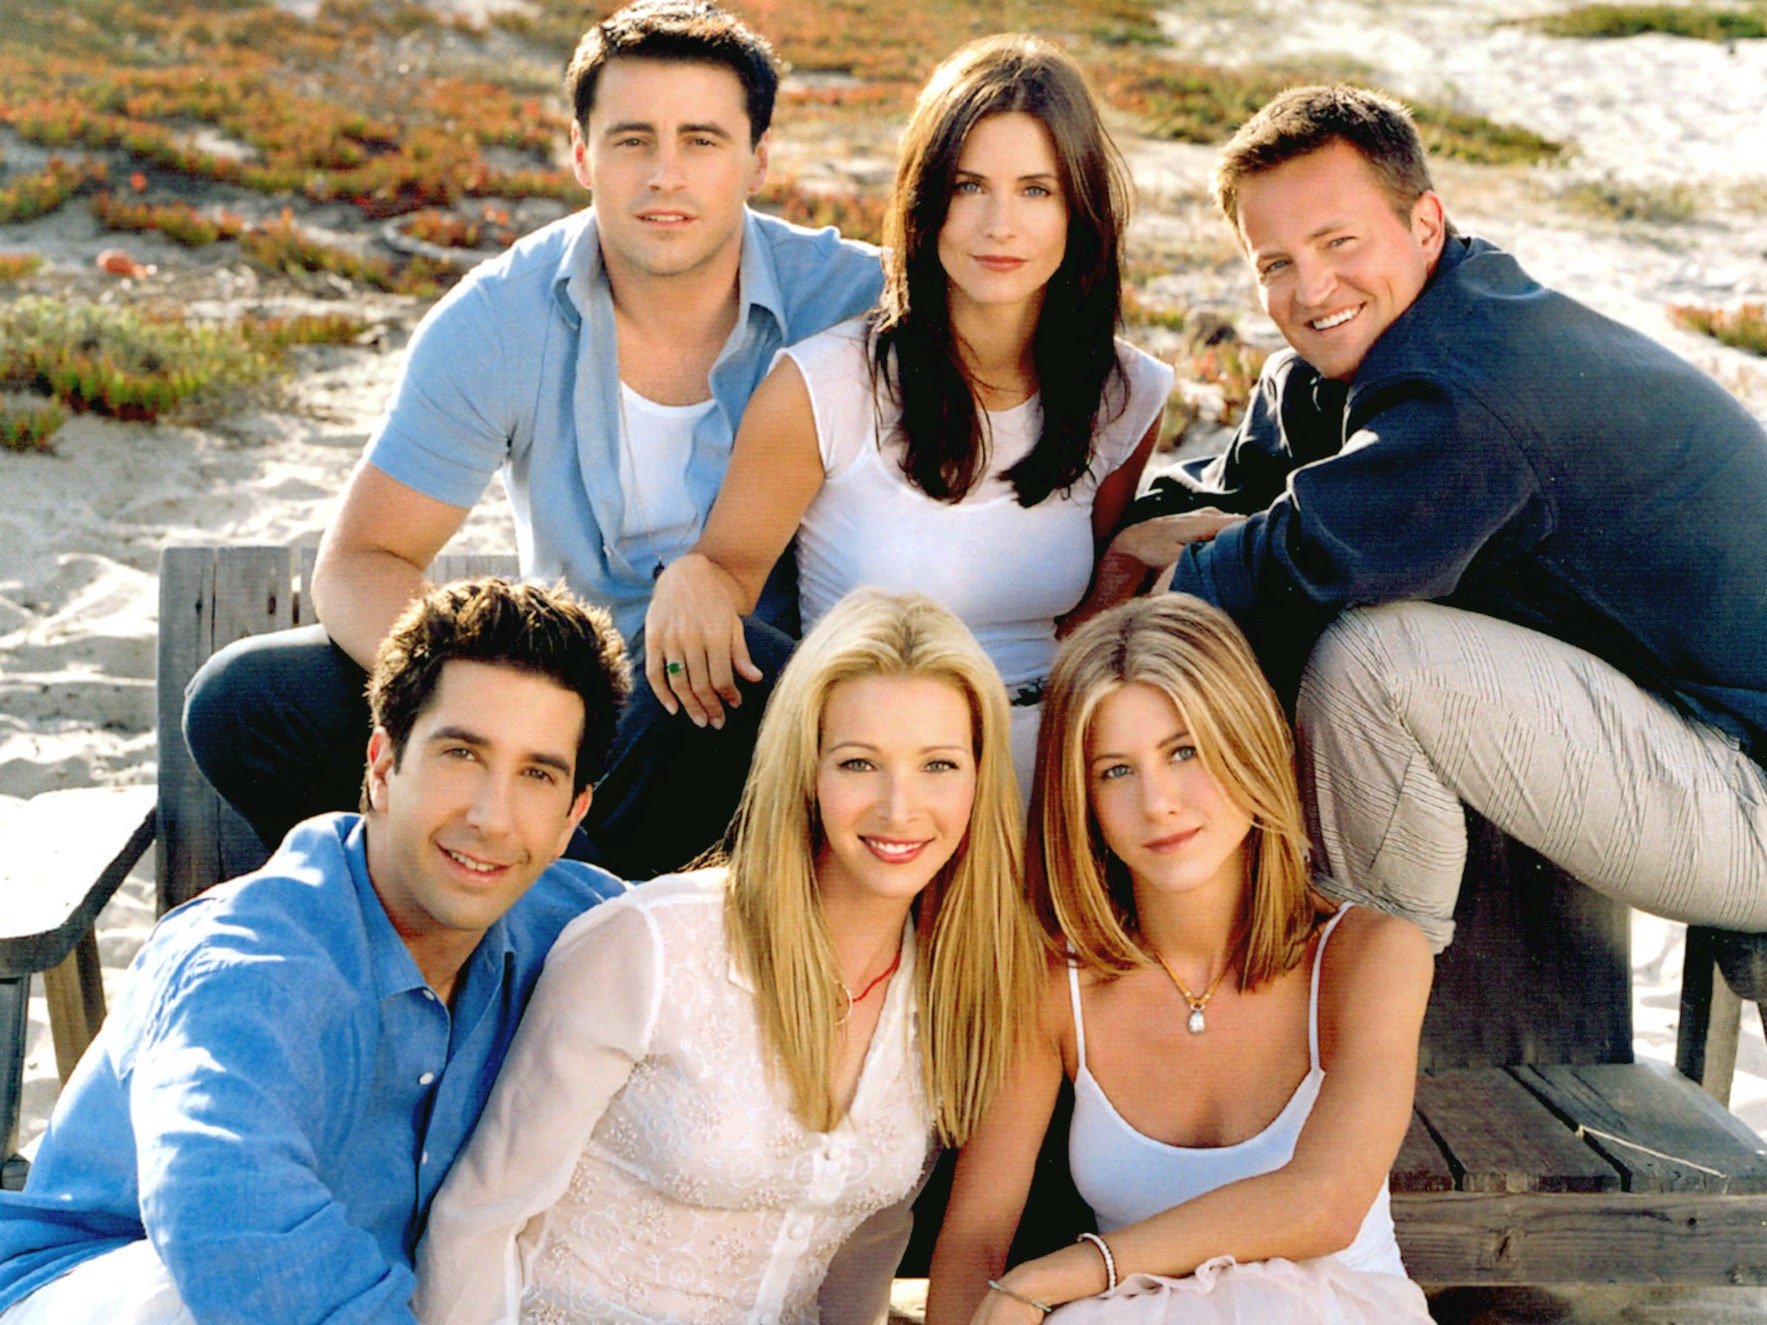 Lisa Kudrow: She Explains The Lack Of Diversity In Friends